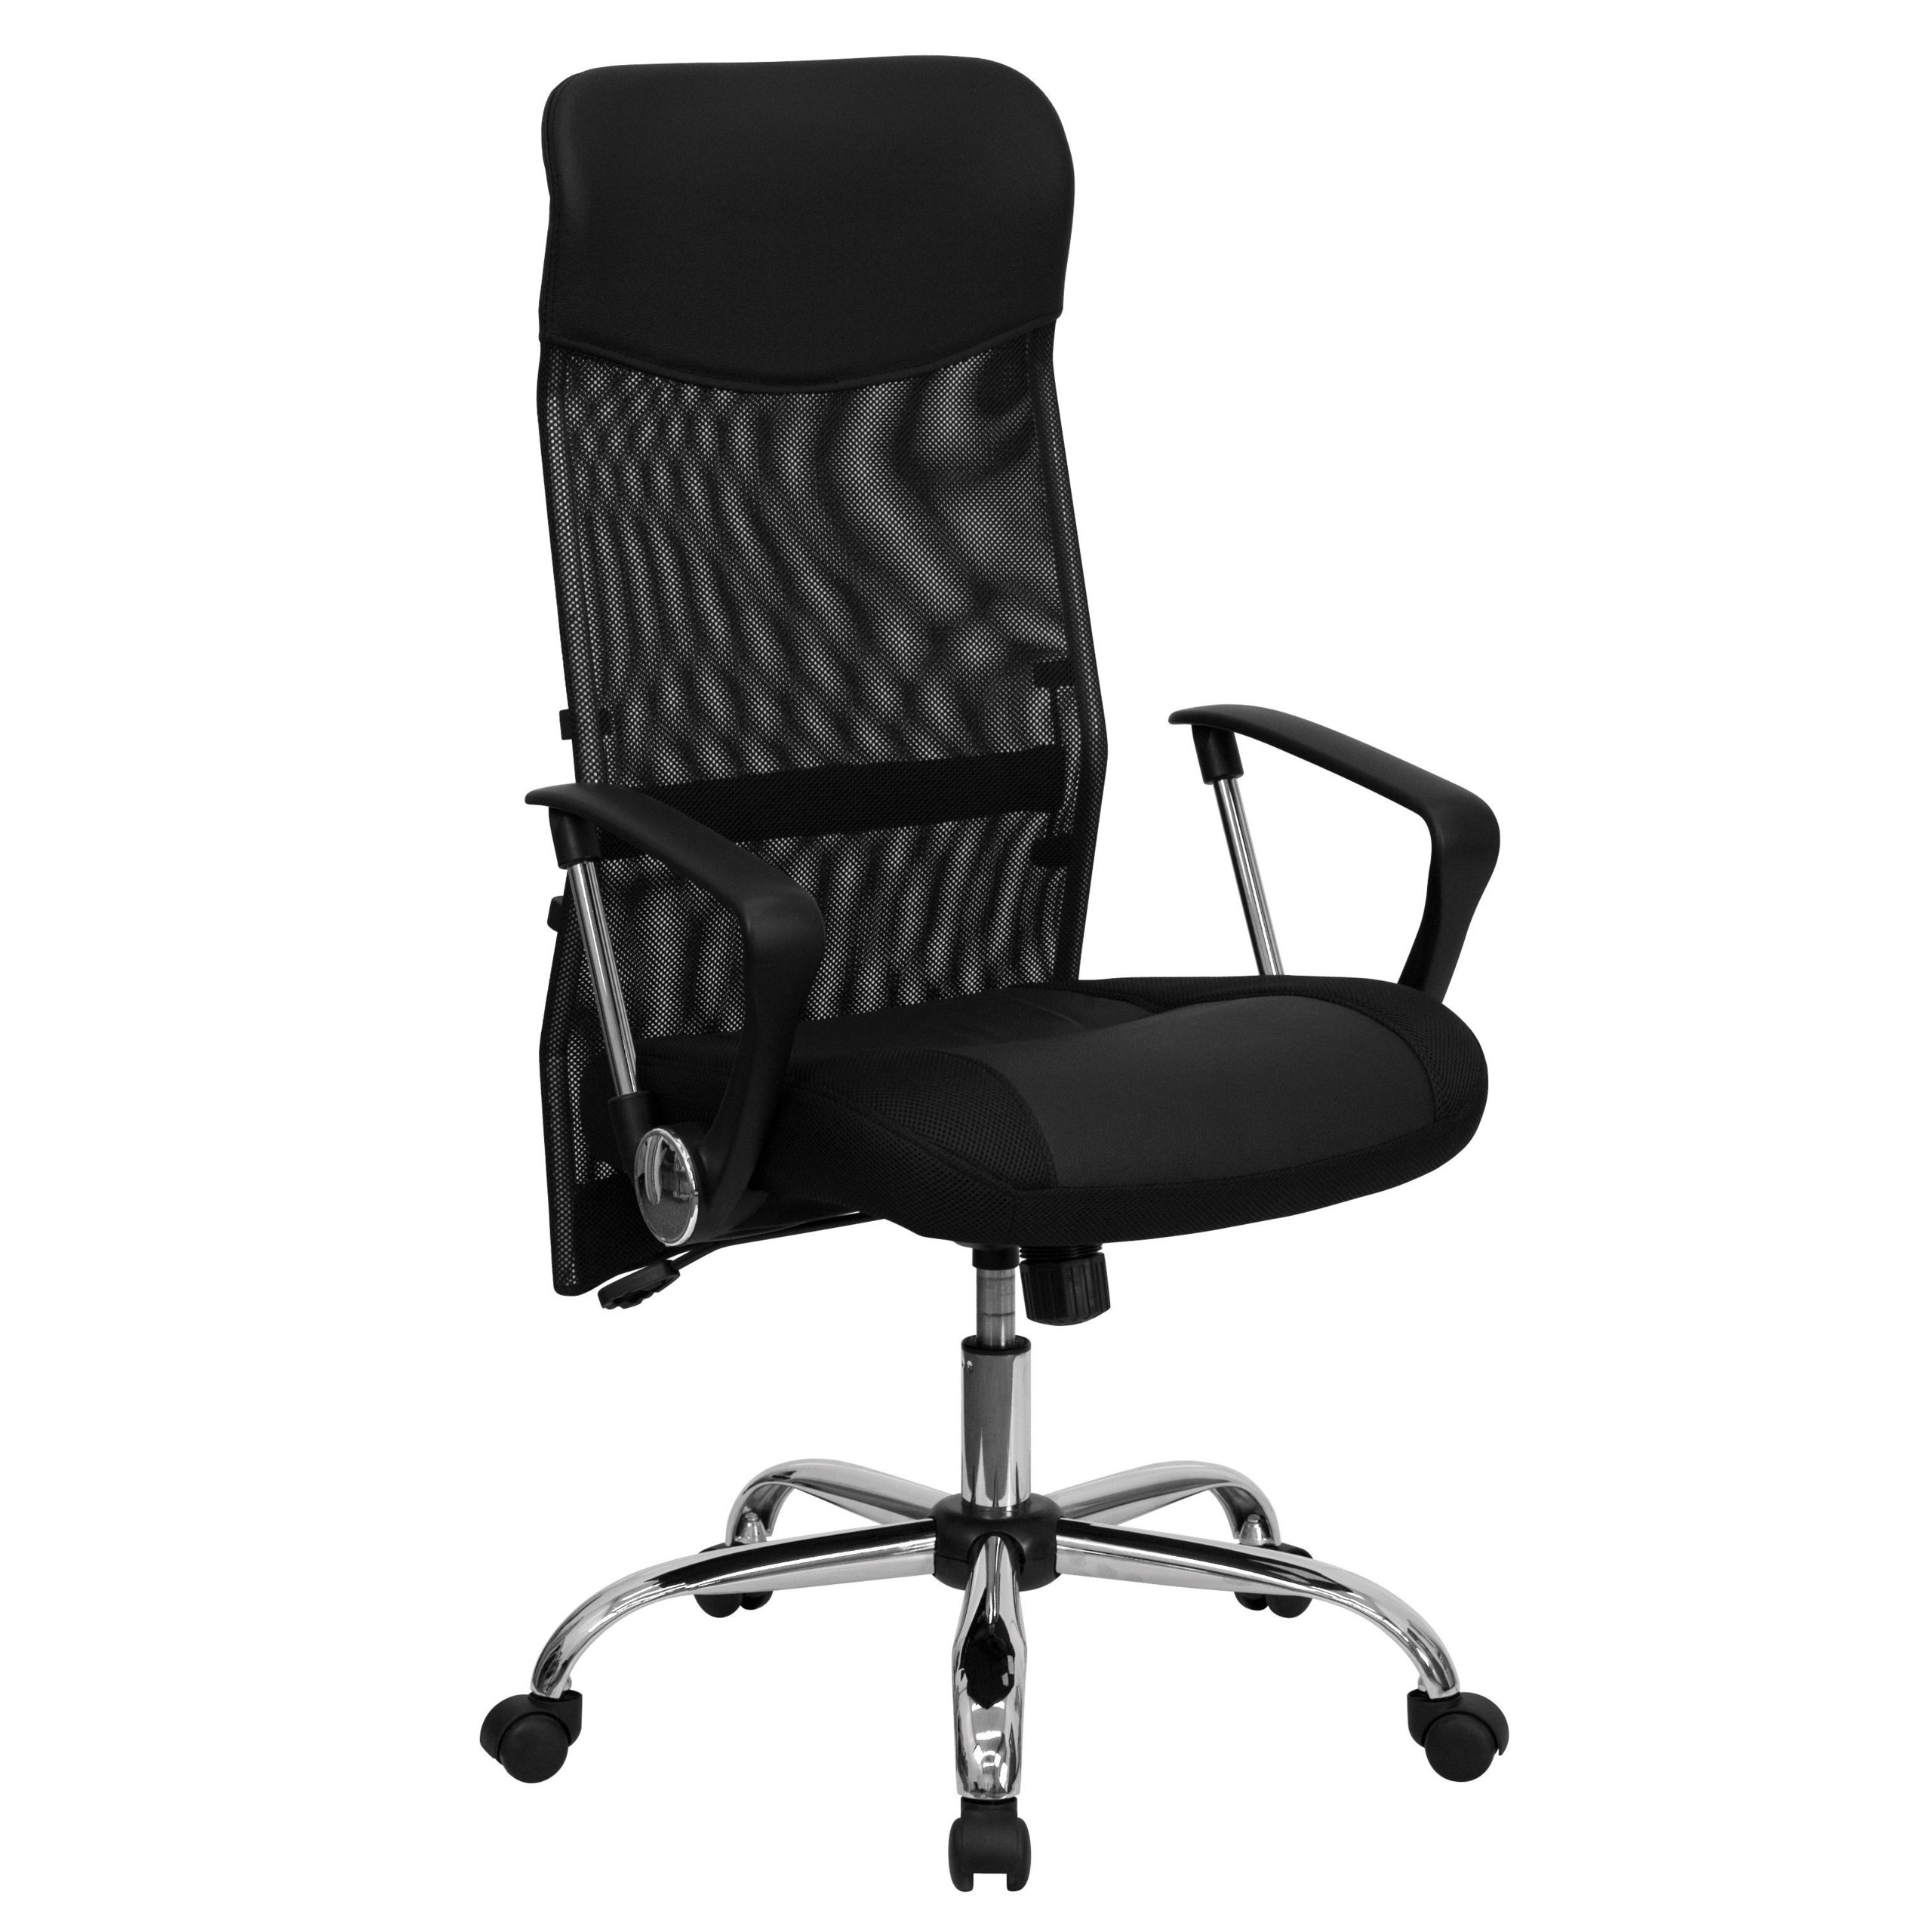 Cheap computer chairs 3  sc 1 st  Foter & Cheap Computer Chairs - Foter